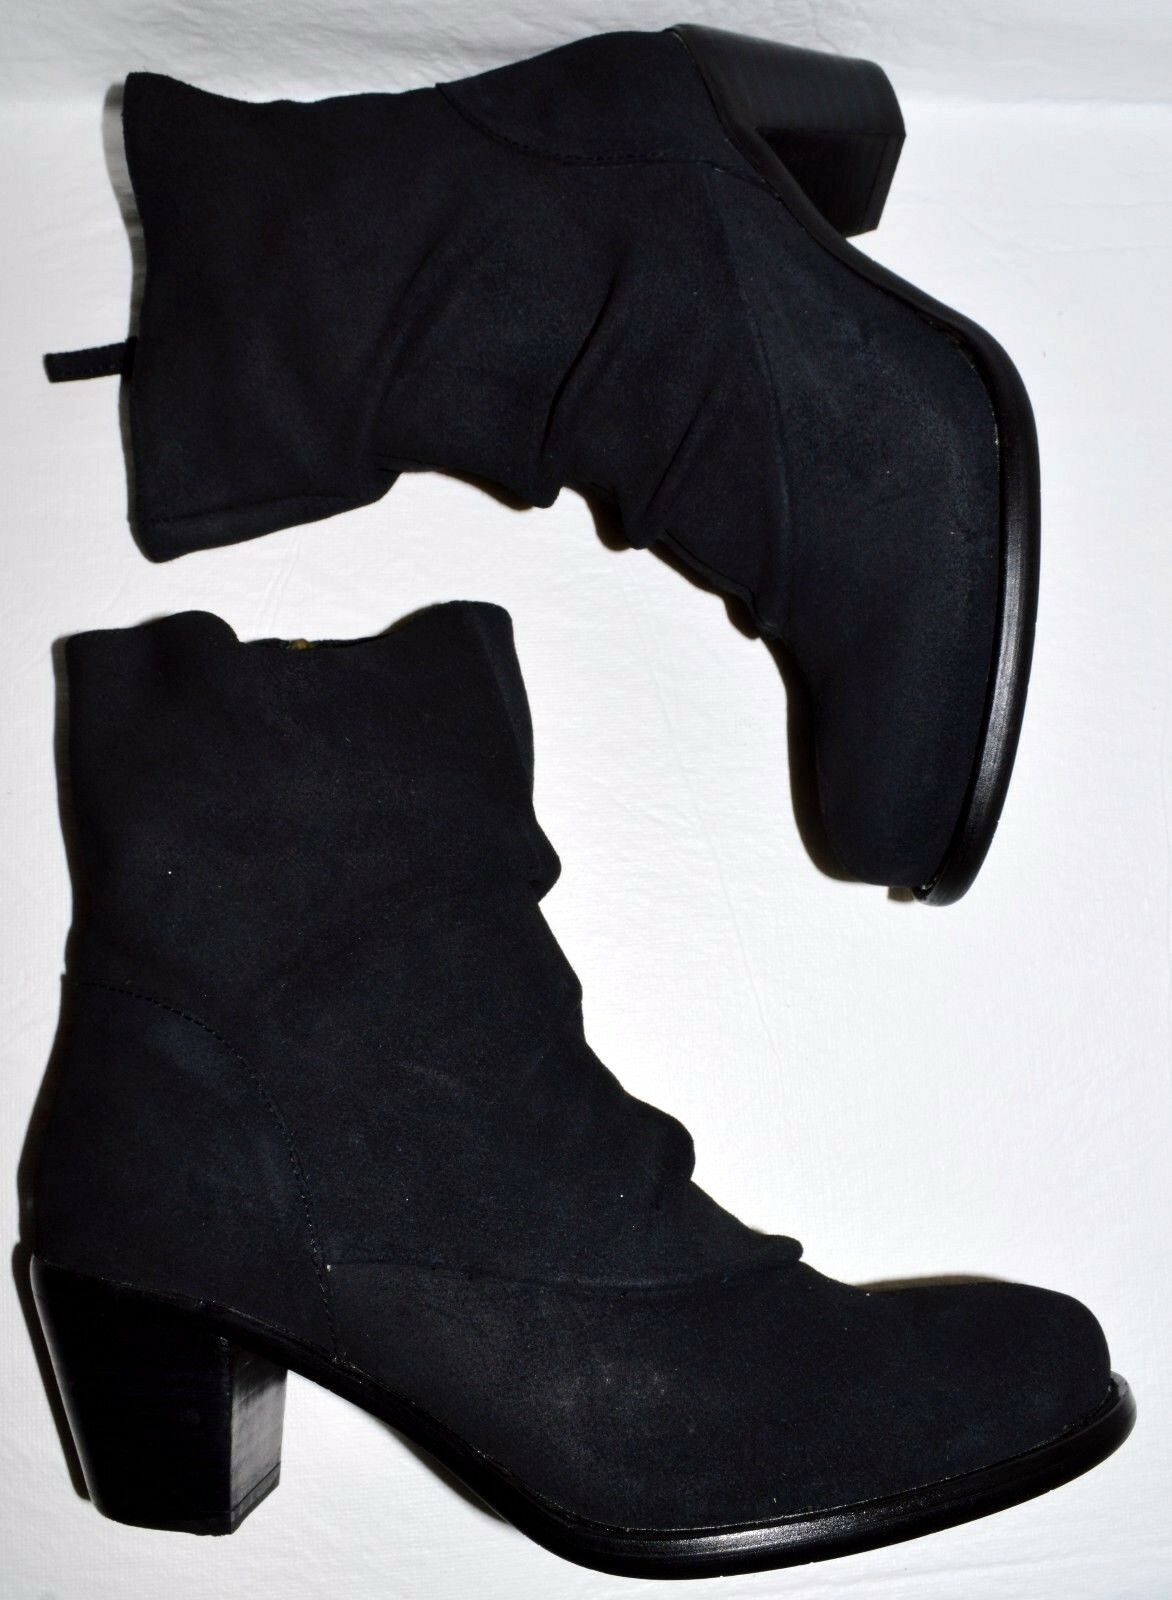 CORDANI CALZATURE UMBER NEW 310 SZ 6.5 M 37 BLACK SUEDE ANKLE BOOTS BOOTIES